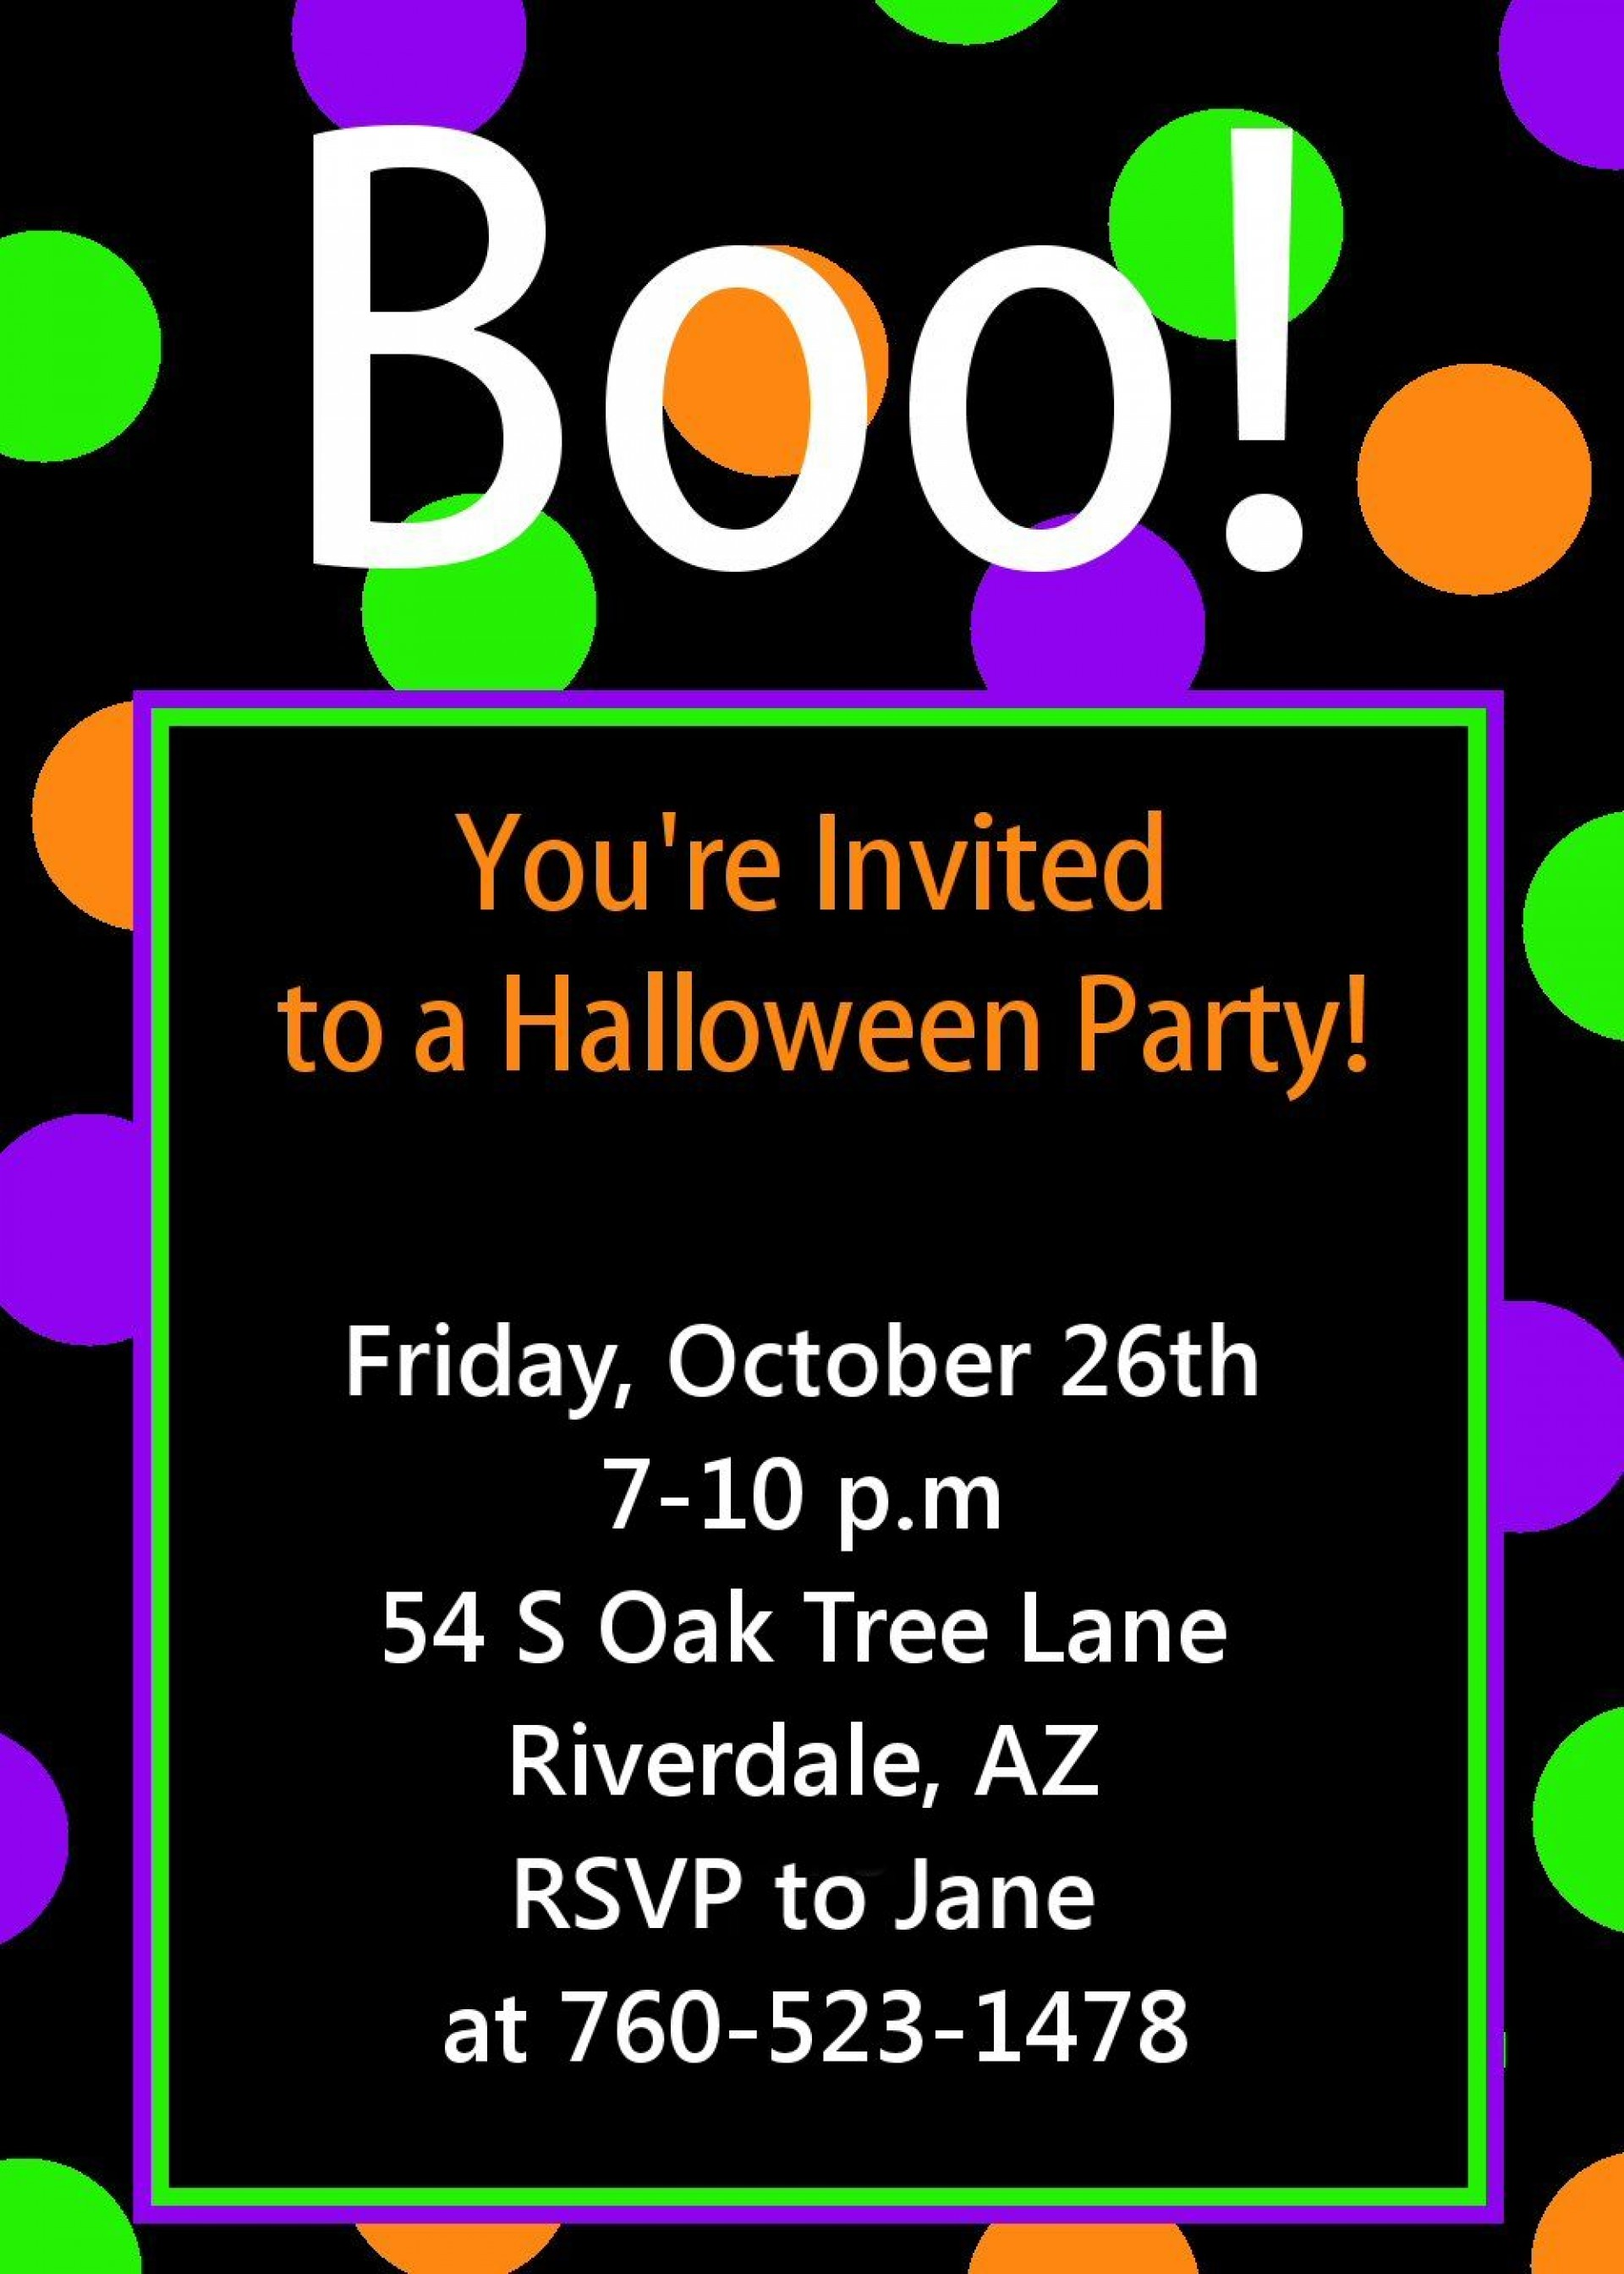 009 Awful Free Halloween Party Invitation Template Picture  Templates Download Printable Birthday1920